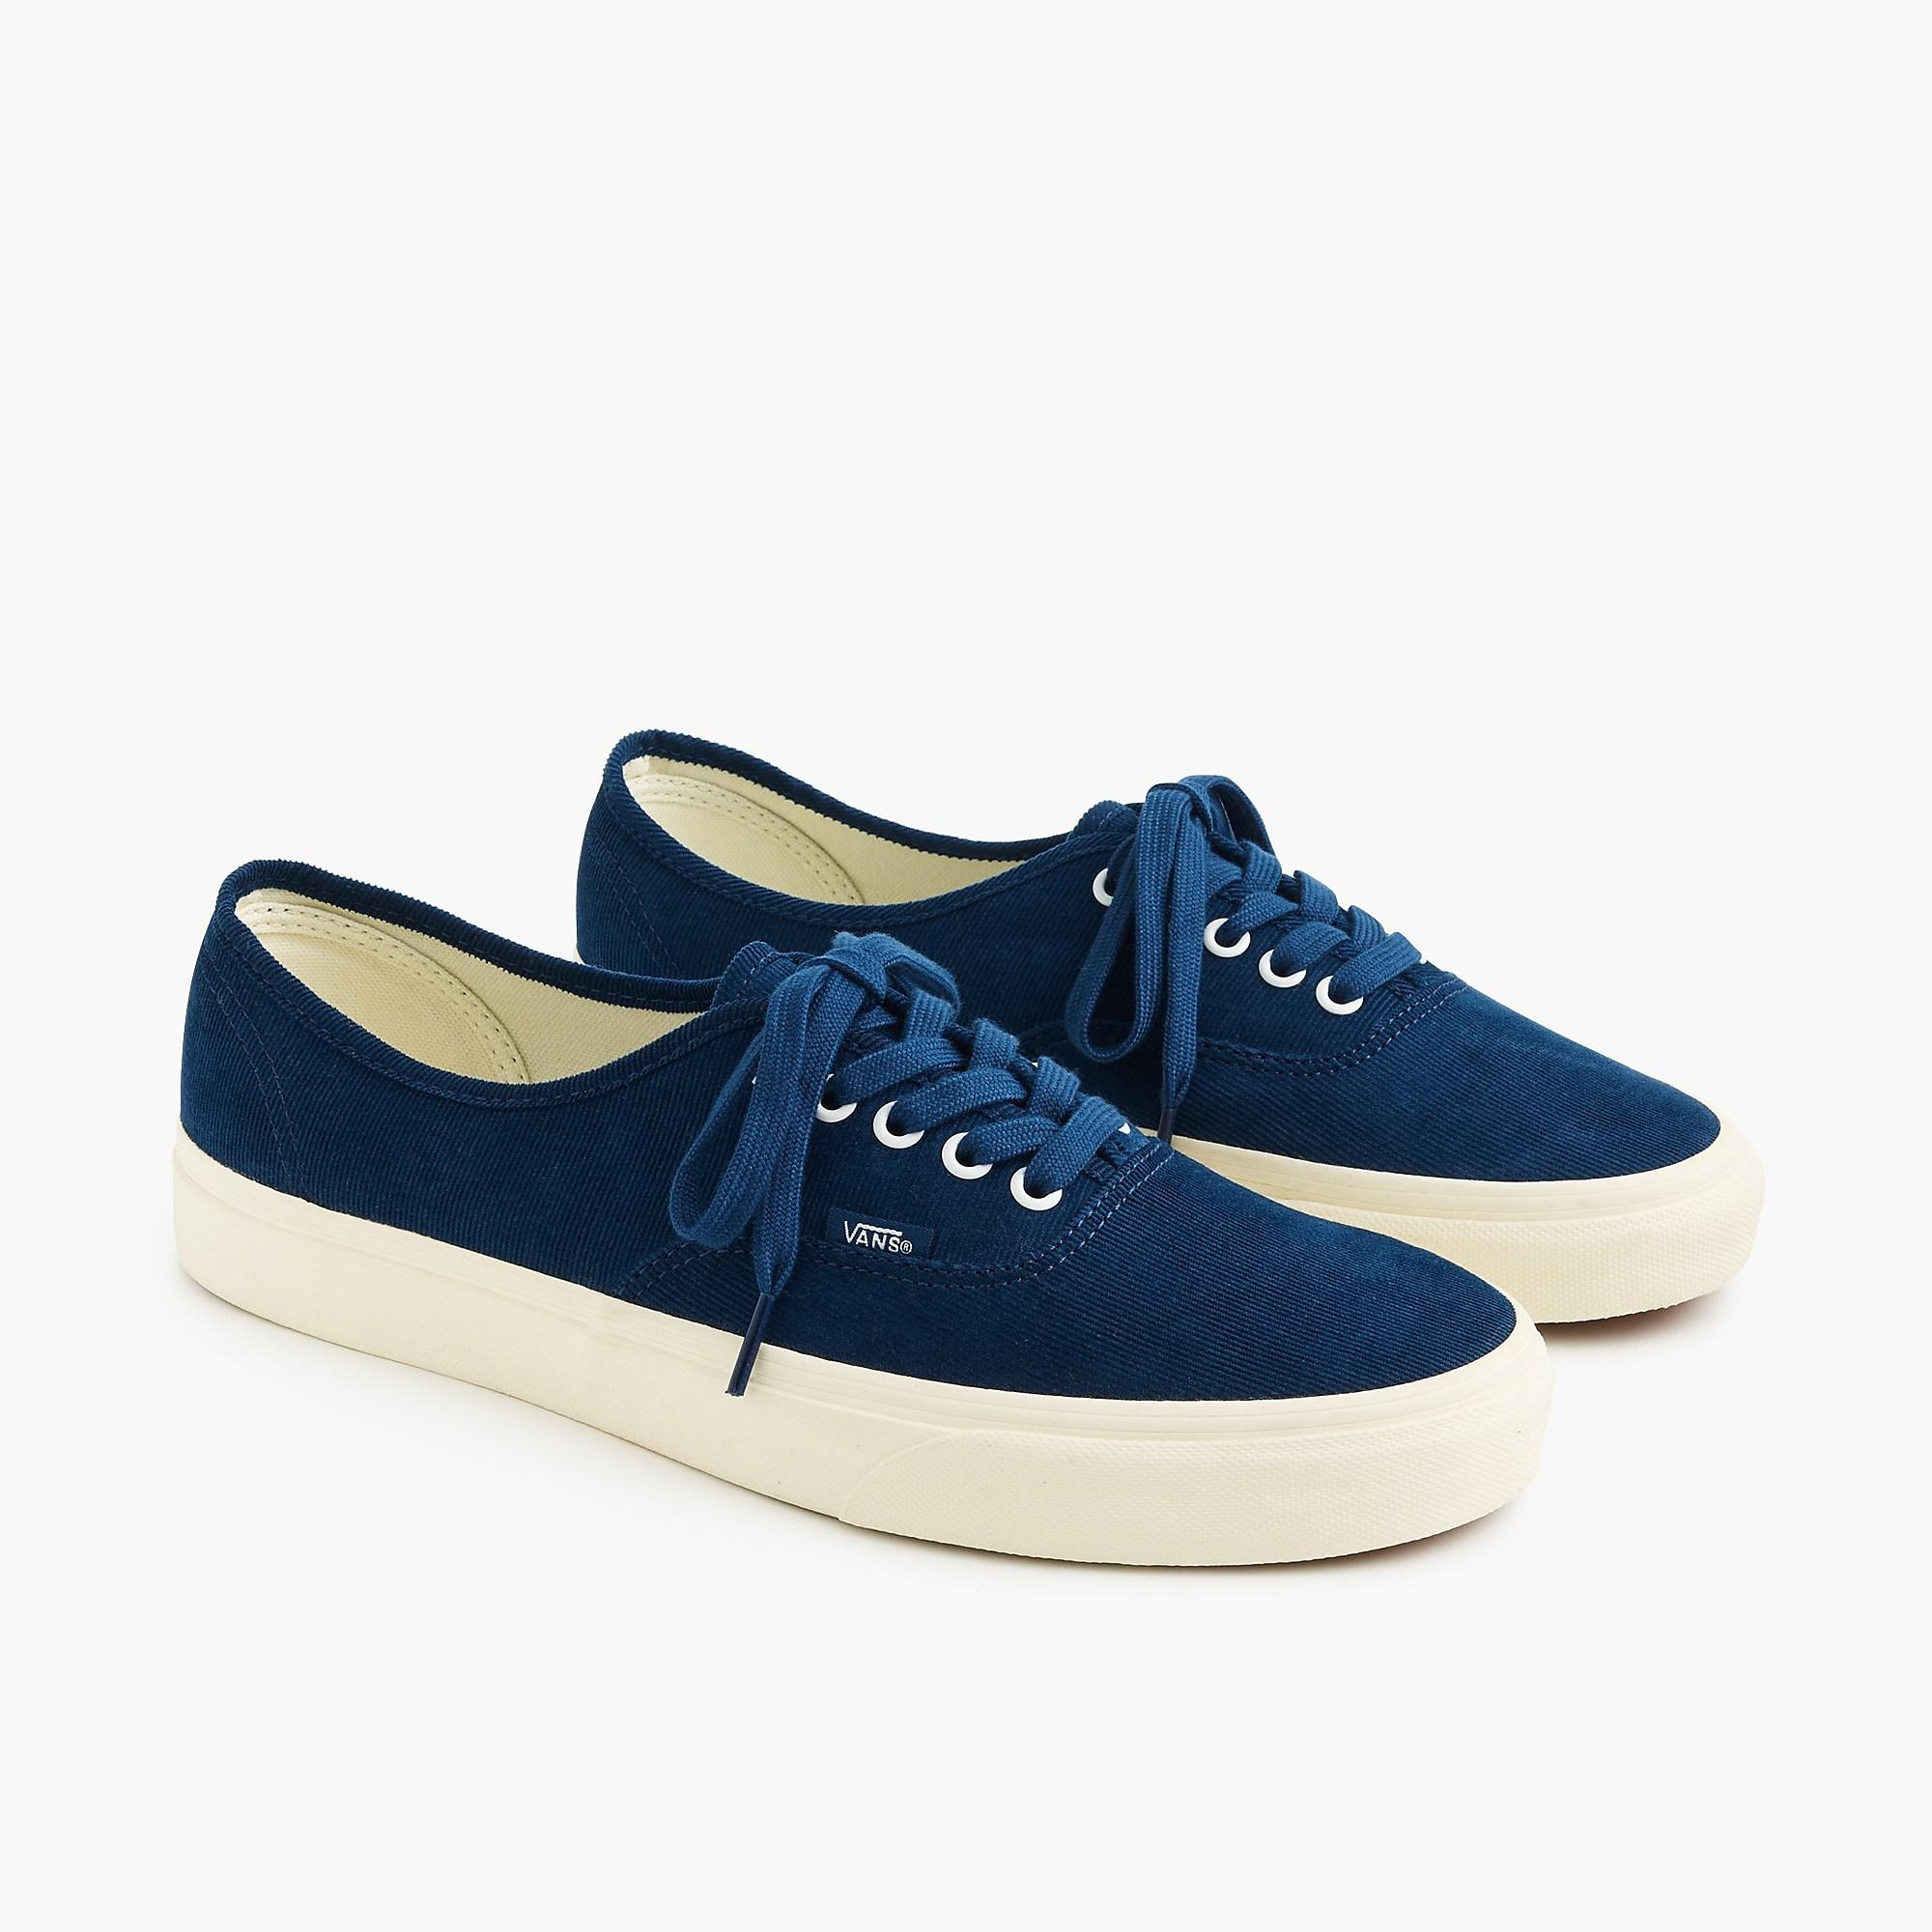 a52c2424e77d0f Vans Authentic Sneakers In Bedford Cord in Blue for Men - Lyst